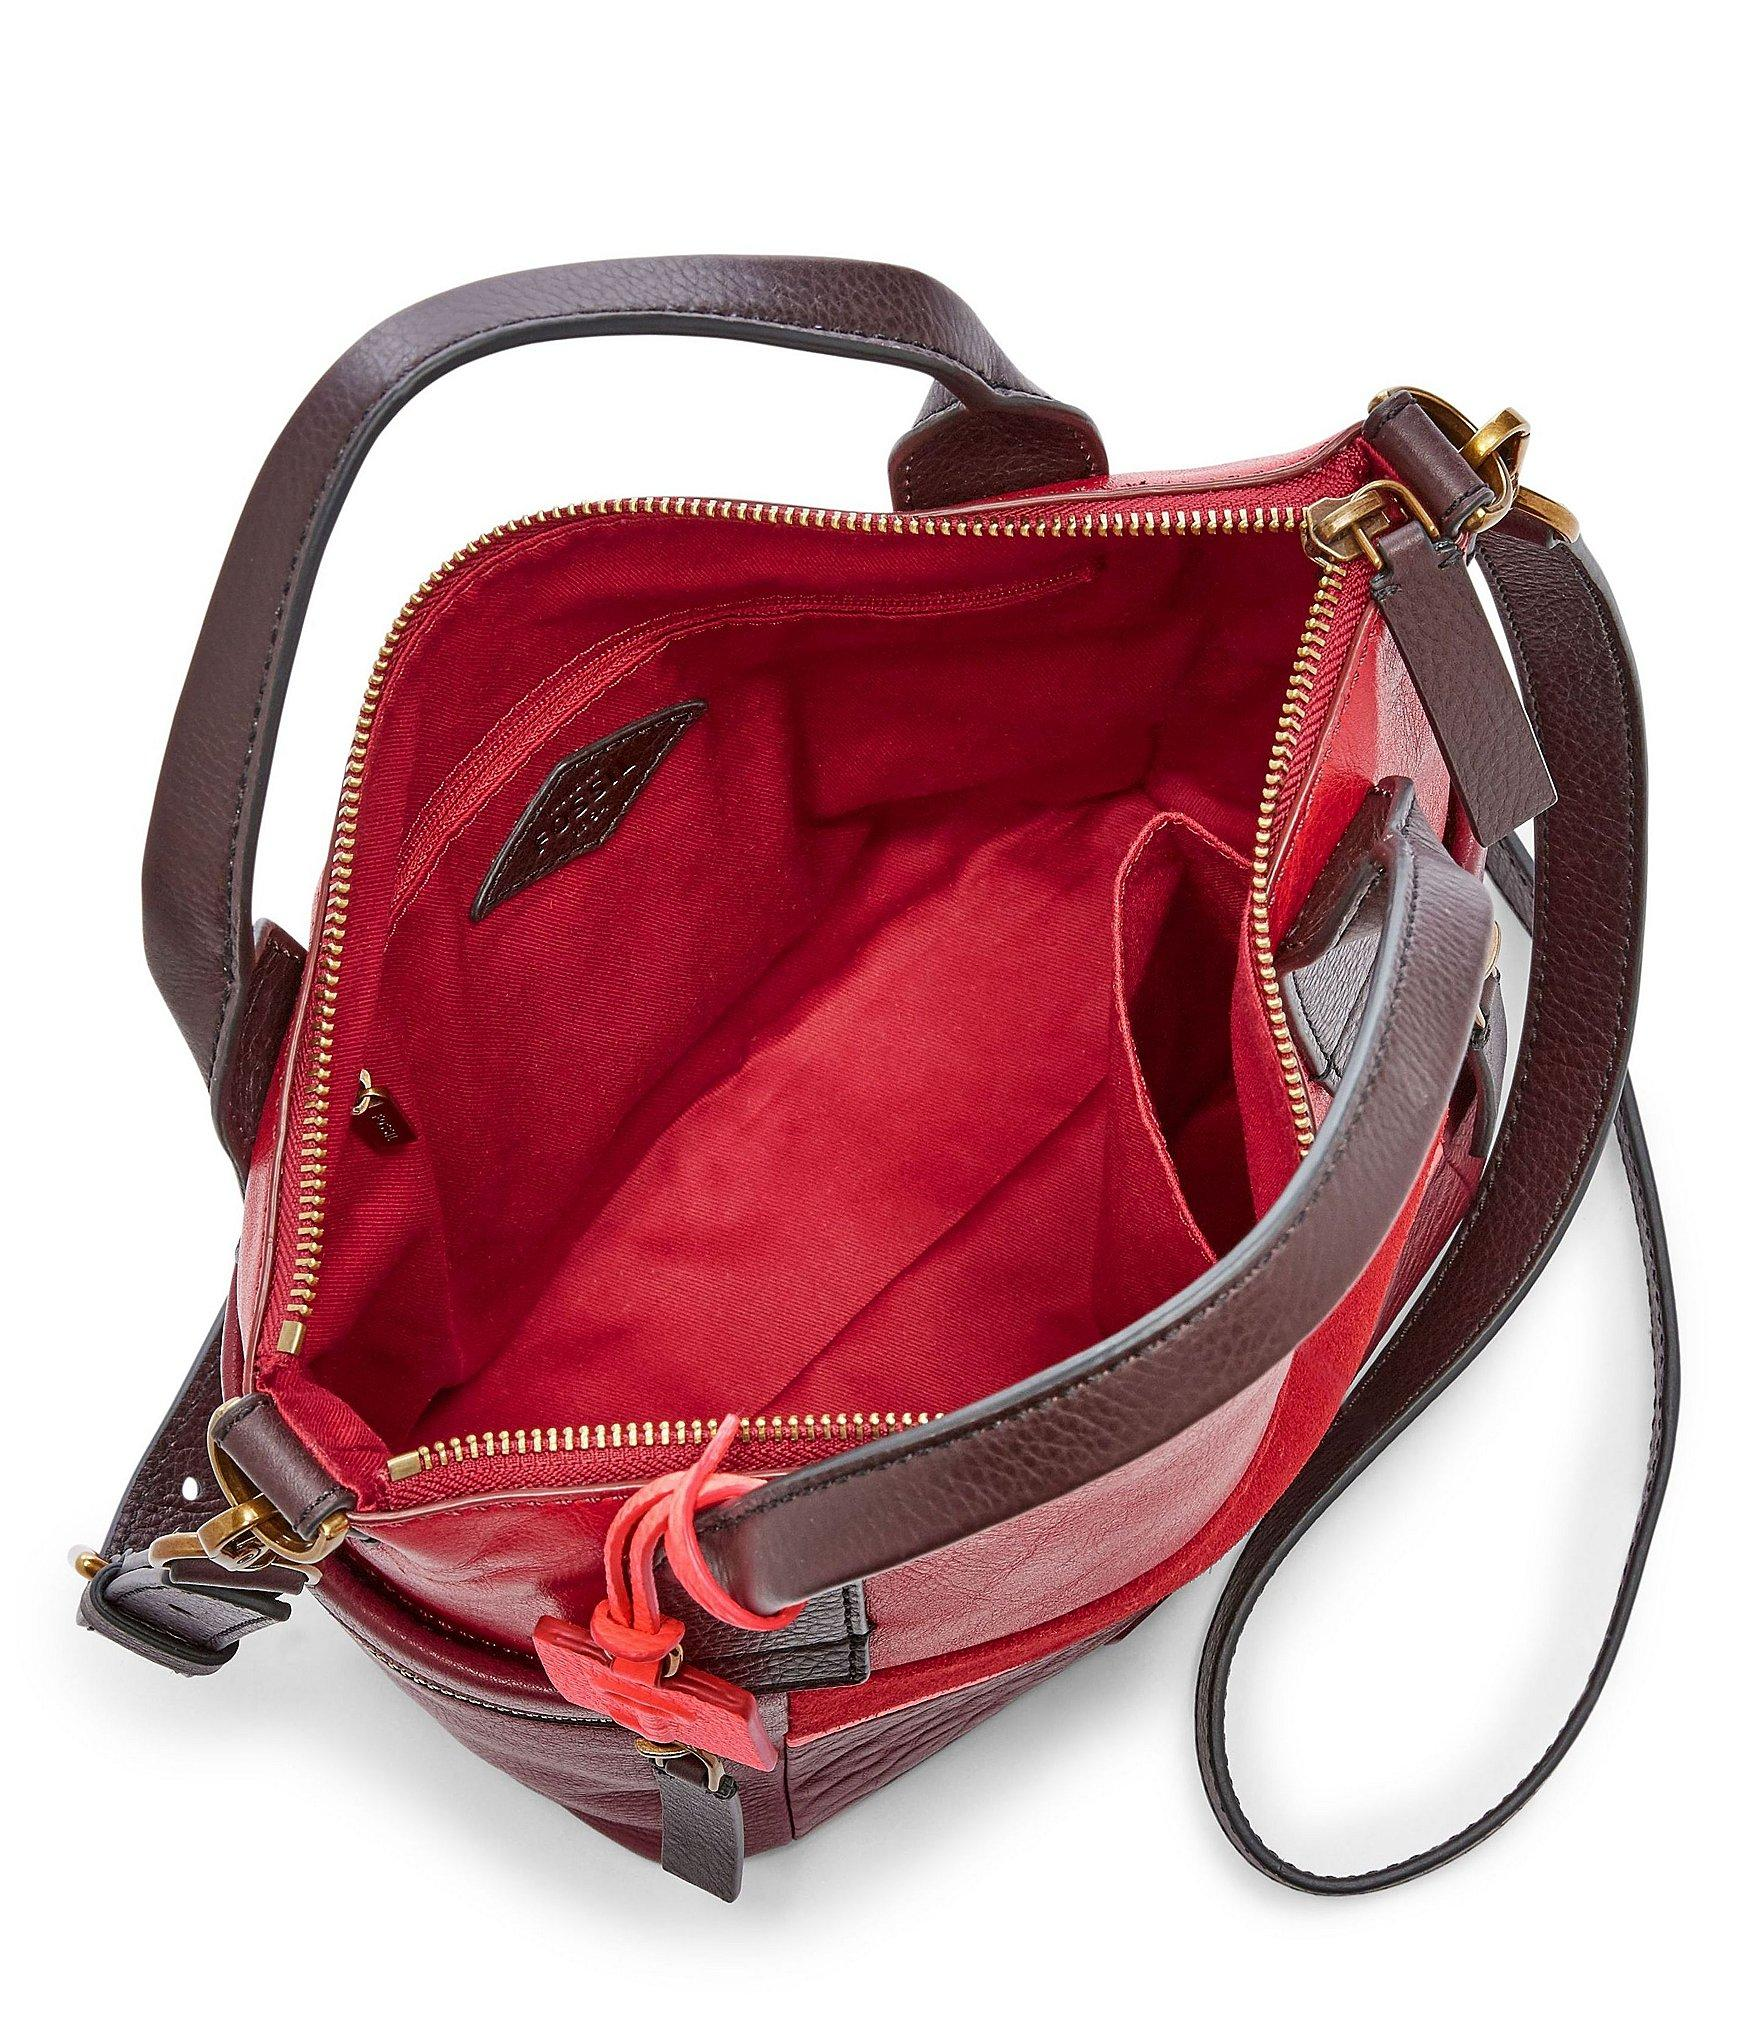 ac4b3ae0af Lyst - Fossil Emerson Patchwork Medium Satchel in Red